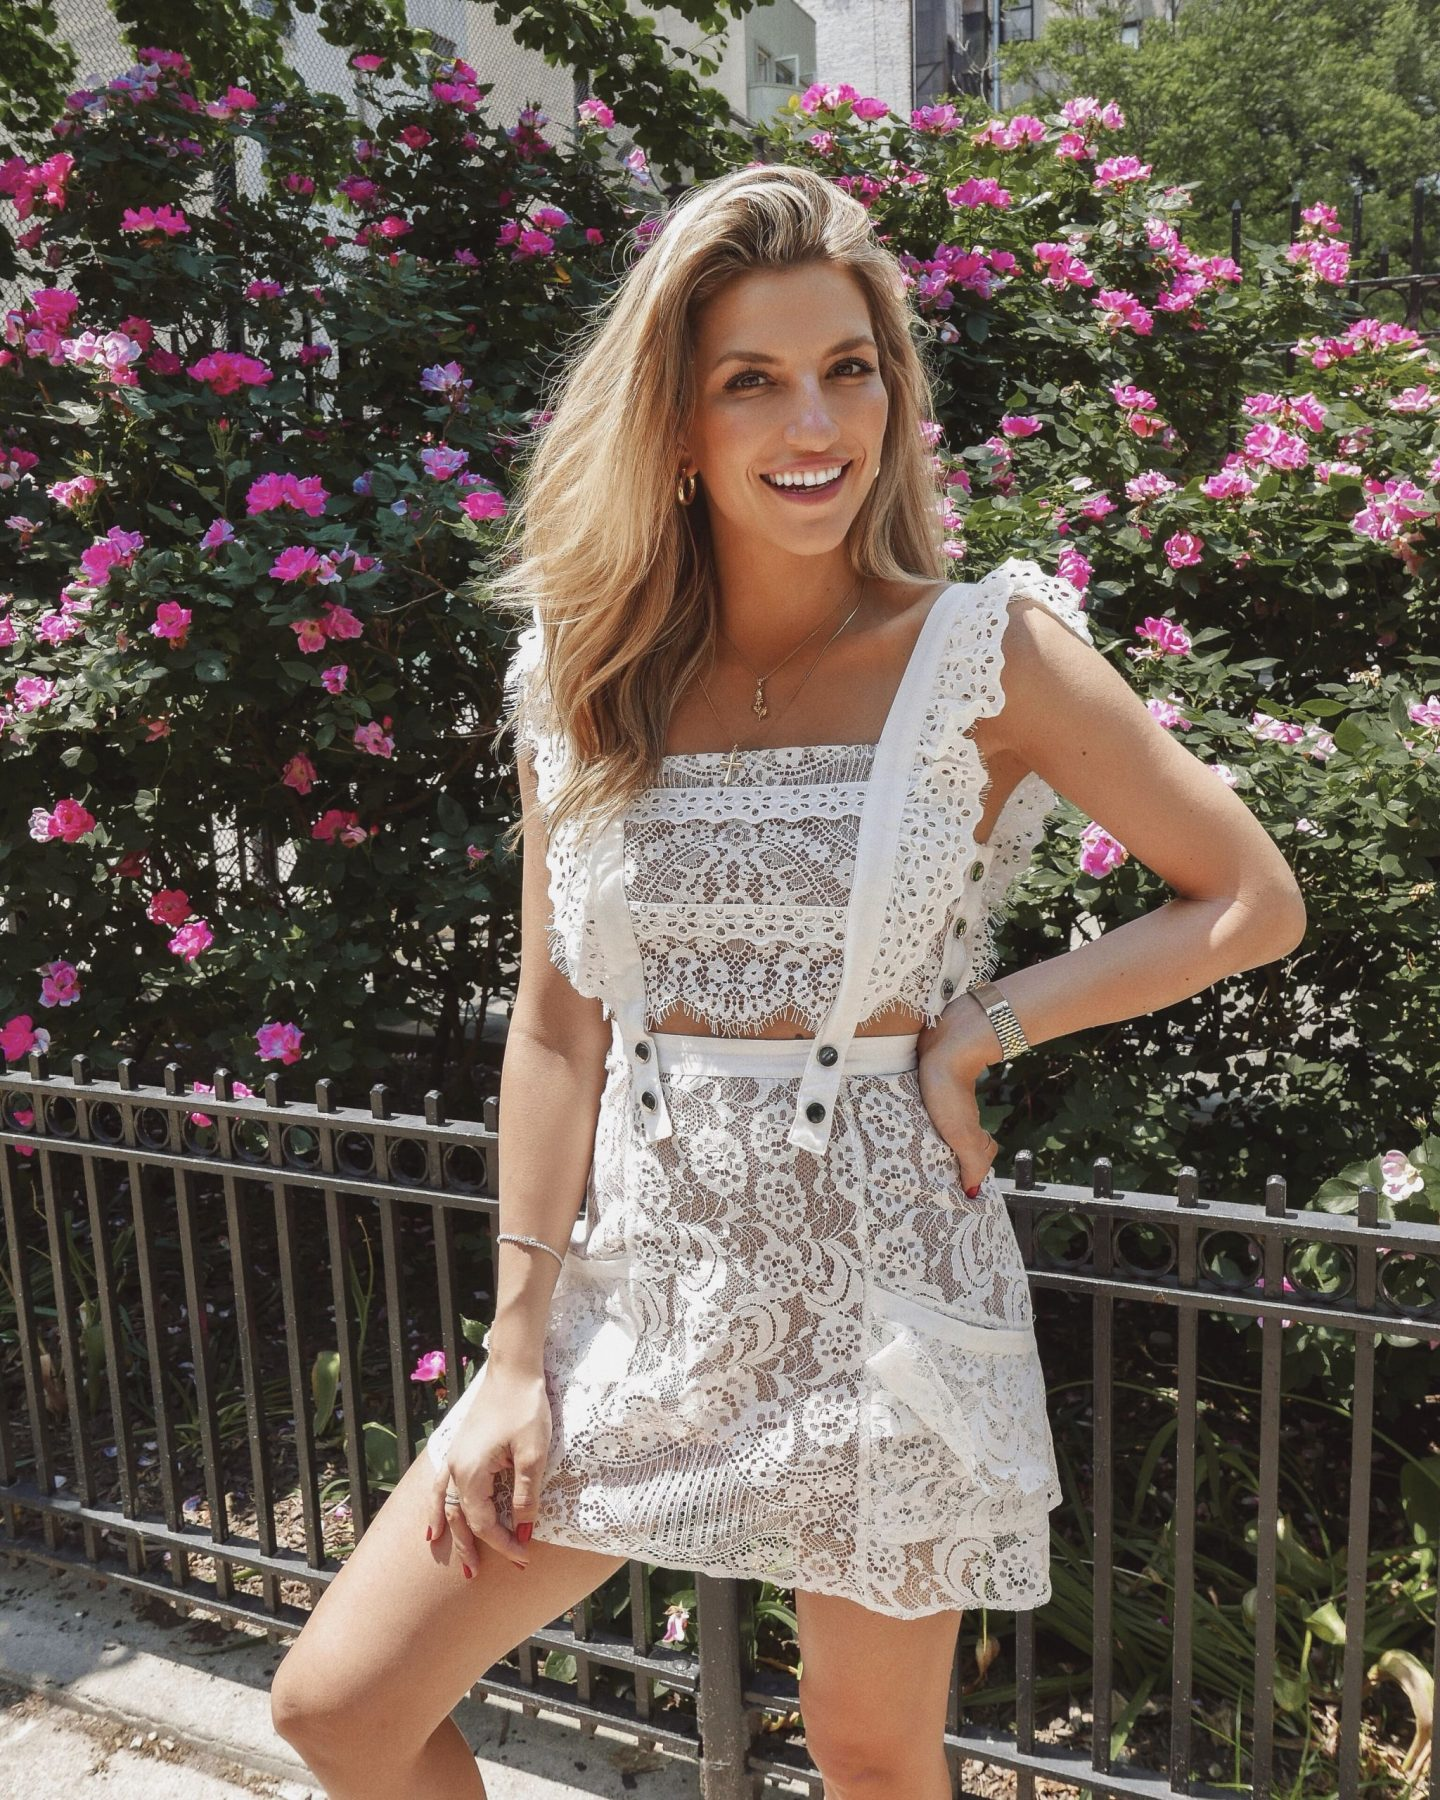 Cassandra DiMicco, Cass DiMicco, Dressed For Dreams, NYC, New York City, New York, Street Style NYC, Street Style 2018, NYC Street Style Street Style Outfits, 2018 Trends, NYC Fashion Blogger, for love and lemons, for love and lemons Tati lace dress, for love and lemons lace dress, white lace dress